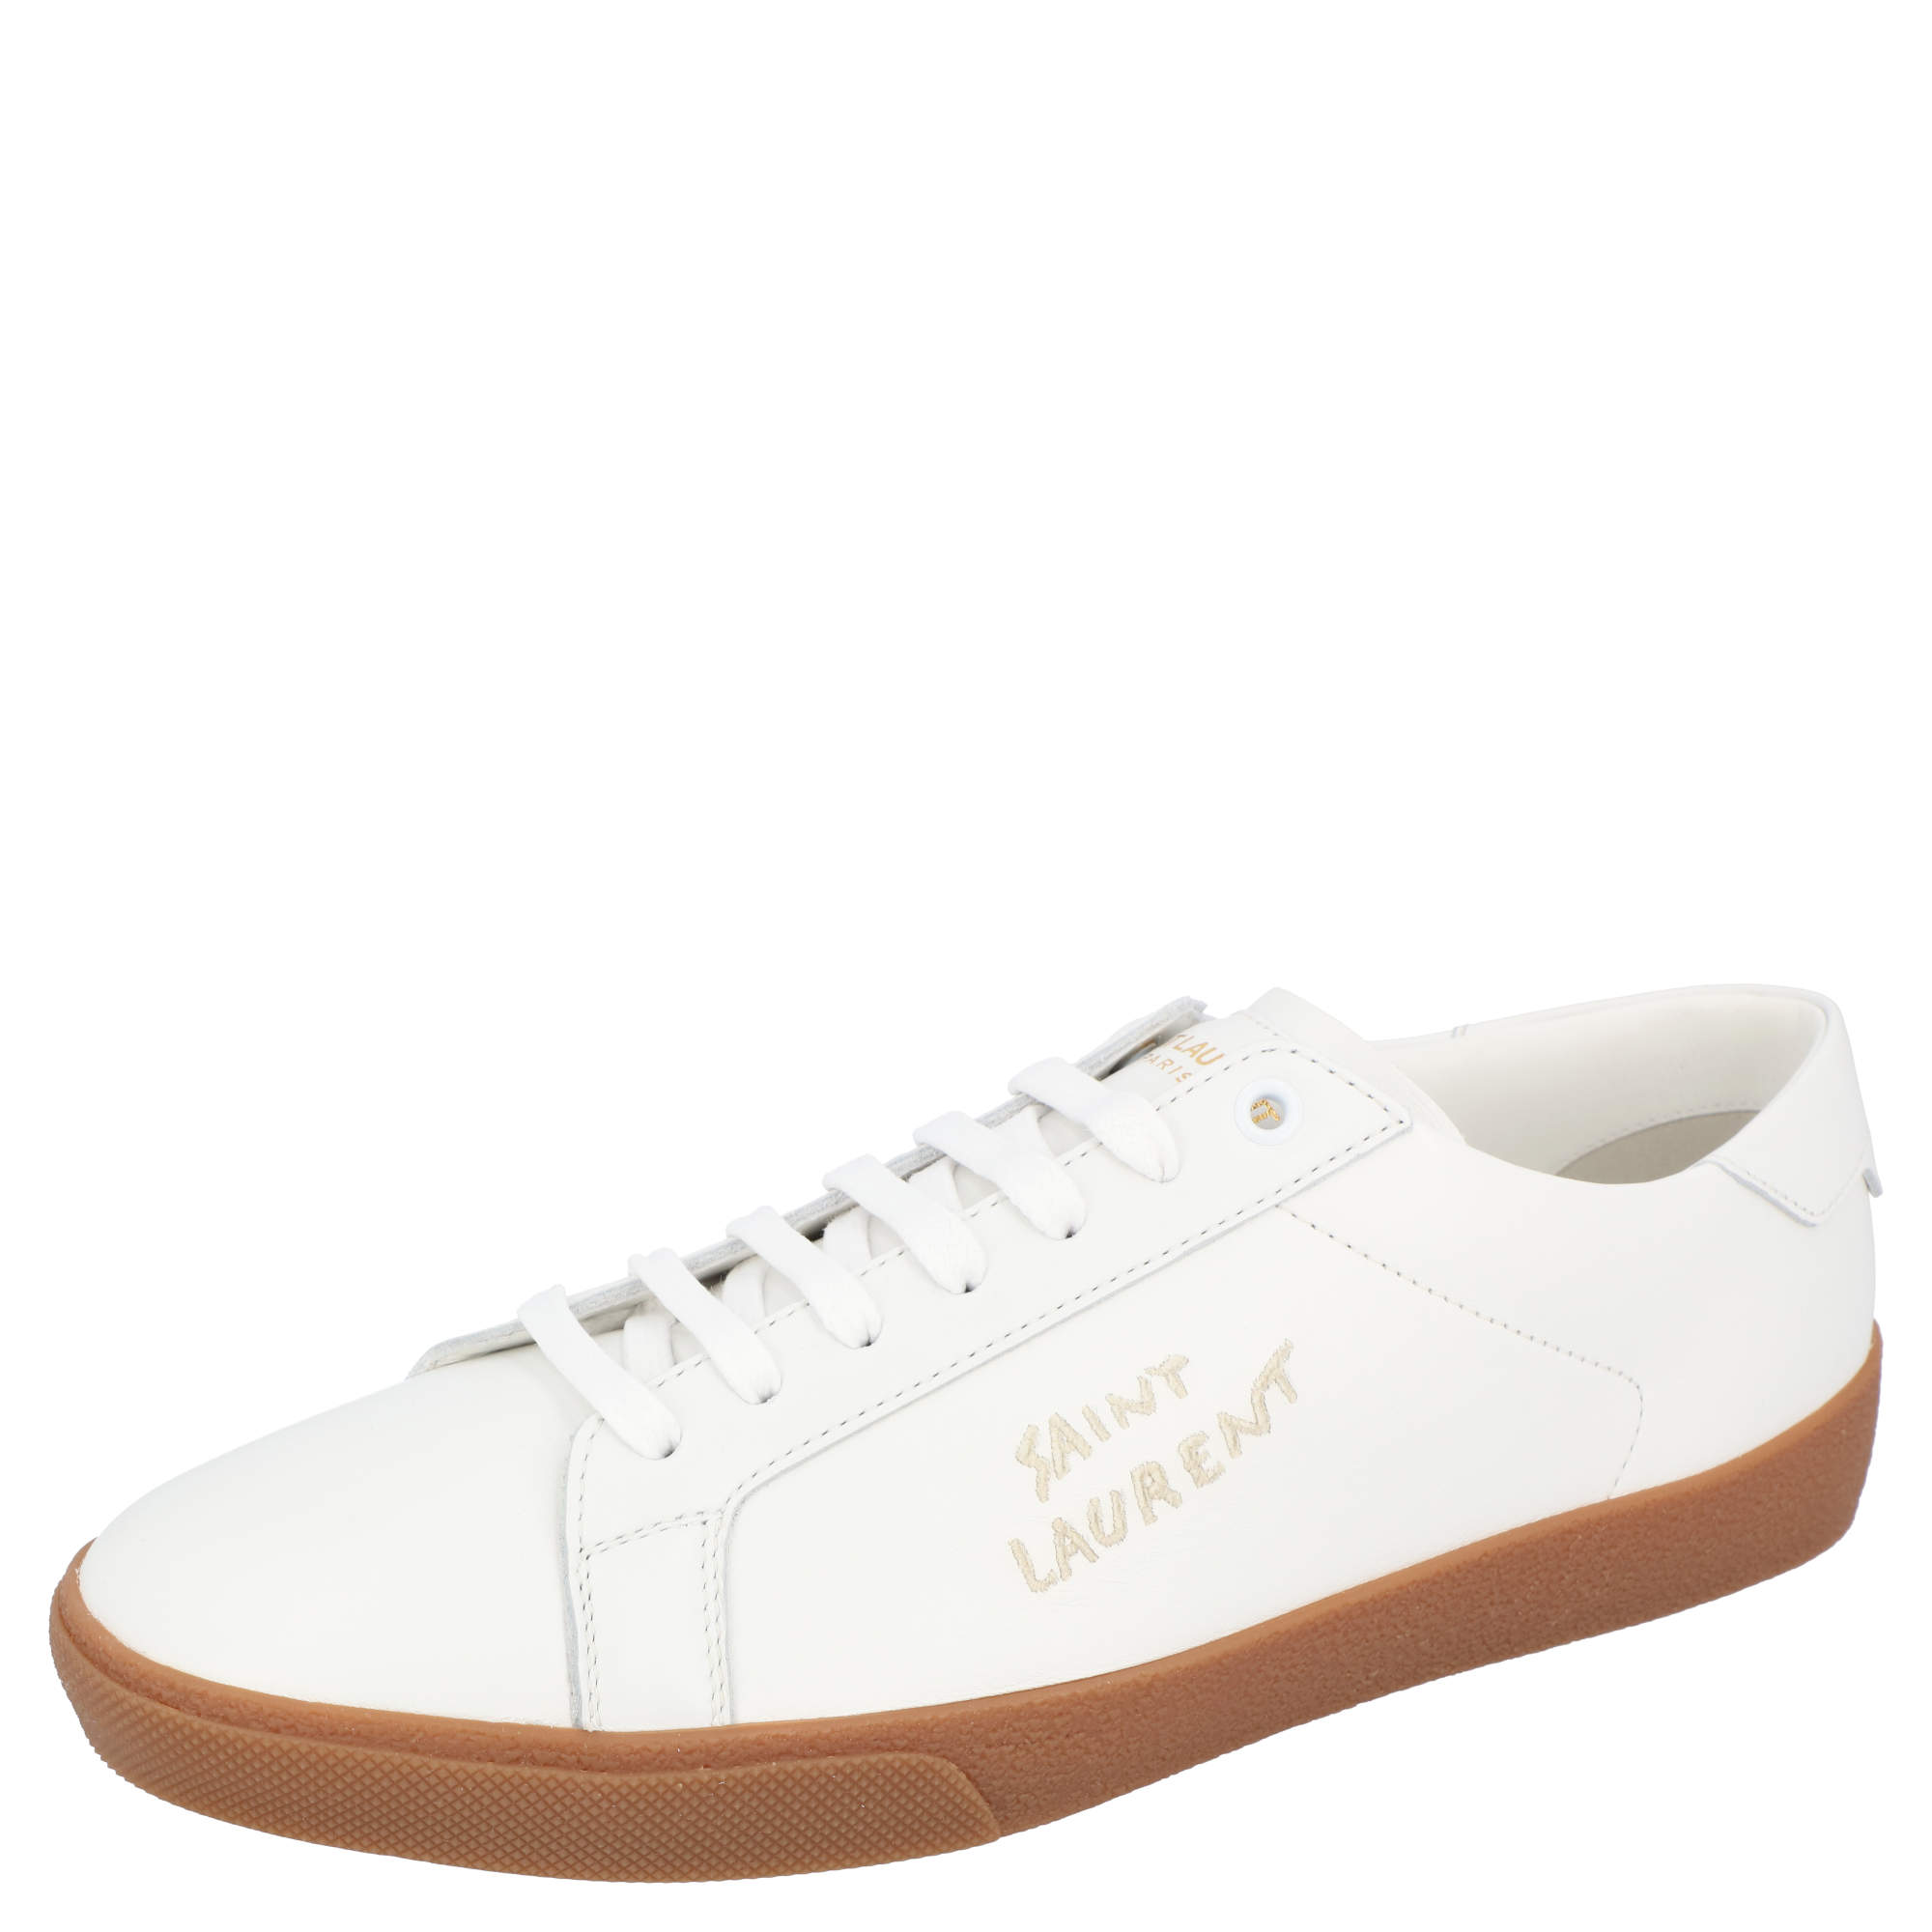 Saint Laurent White Leather SL/06 Embroidered Court Classic Sneakers Size EU 42